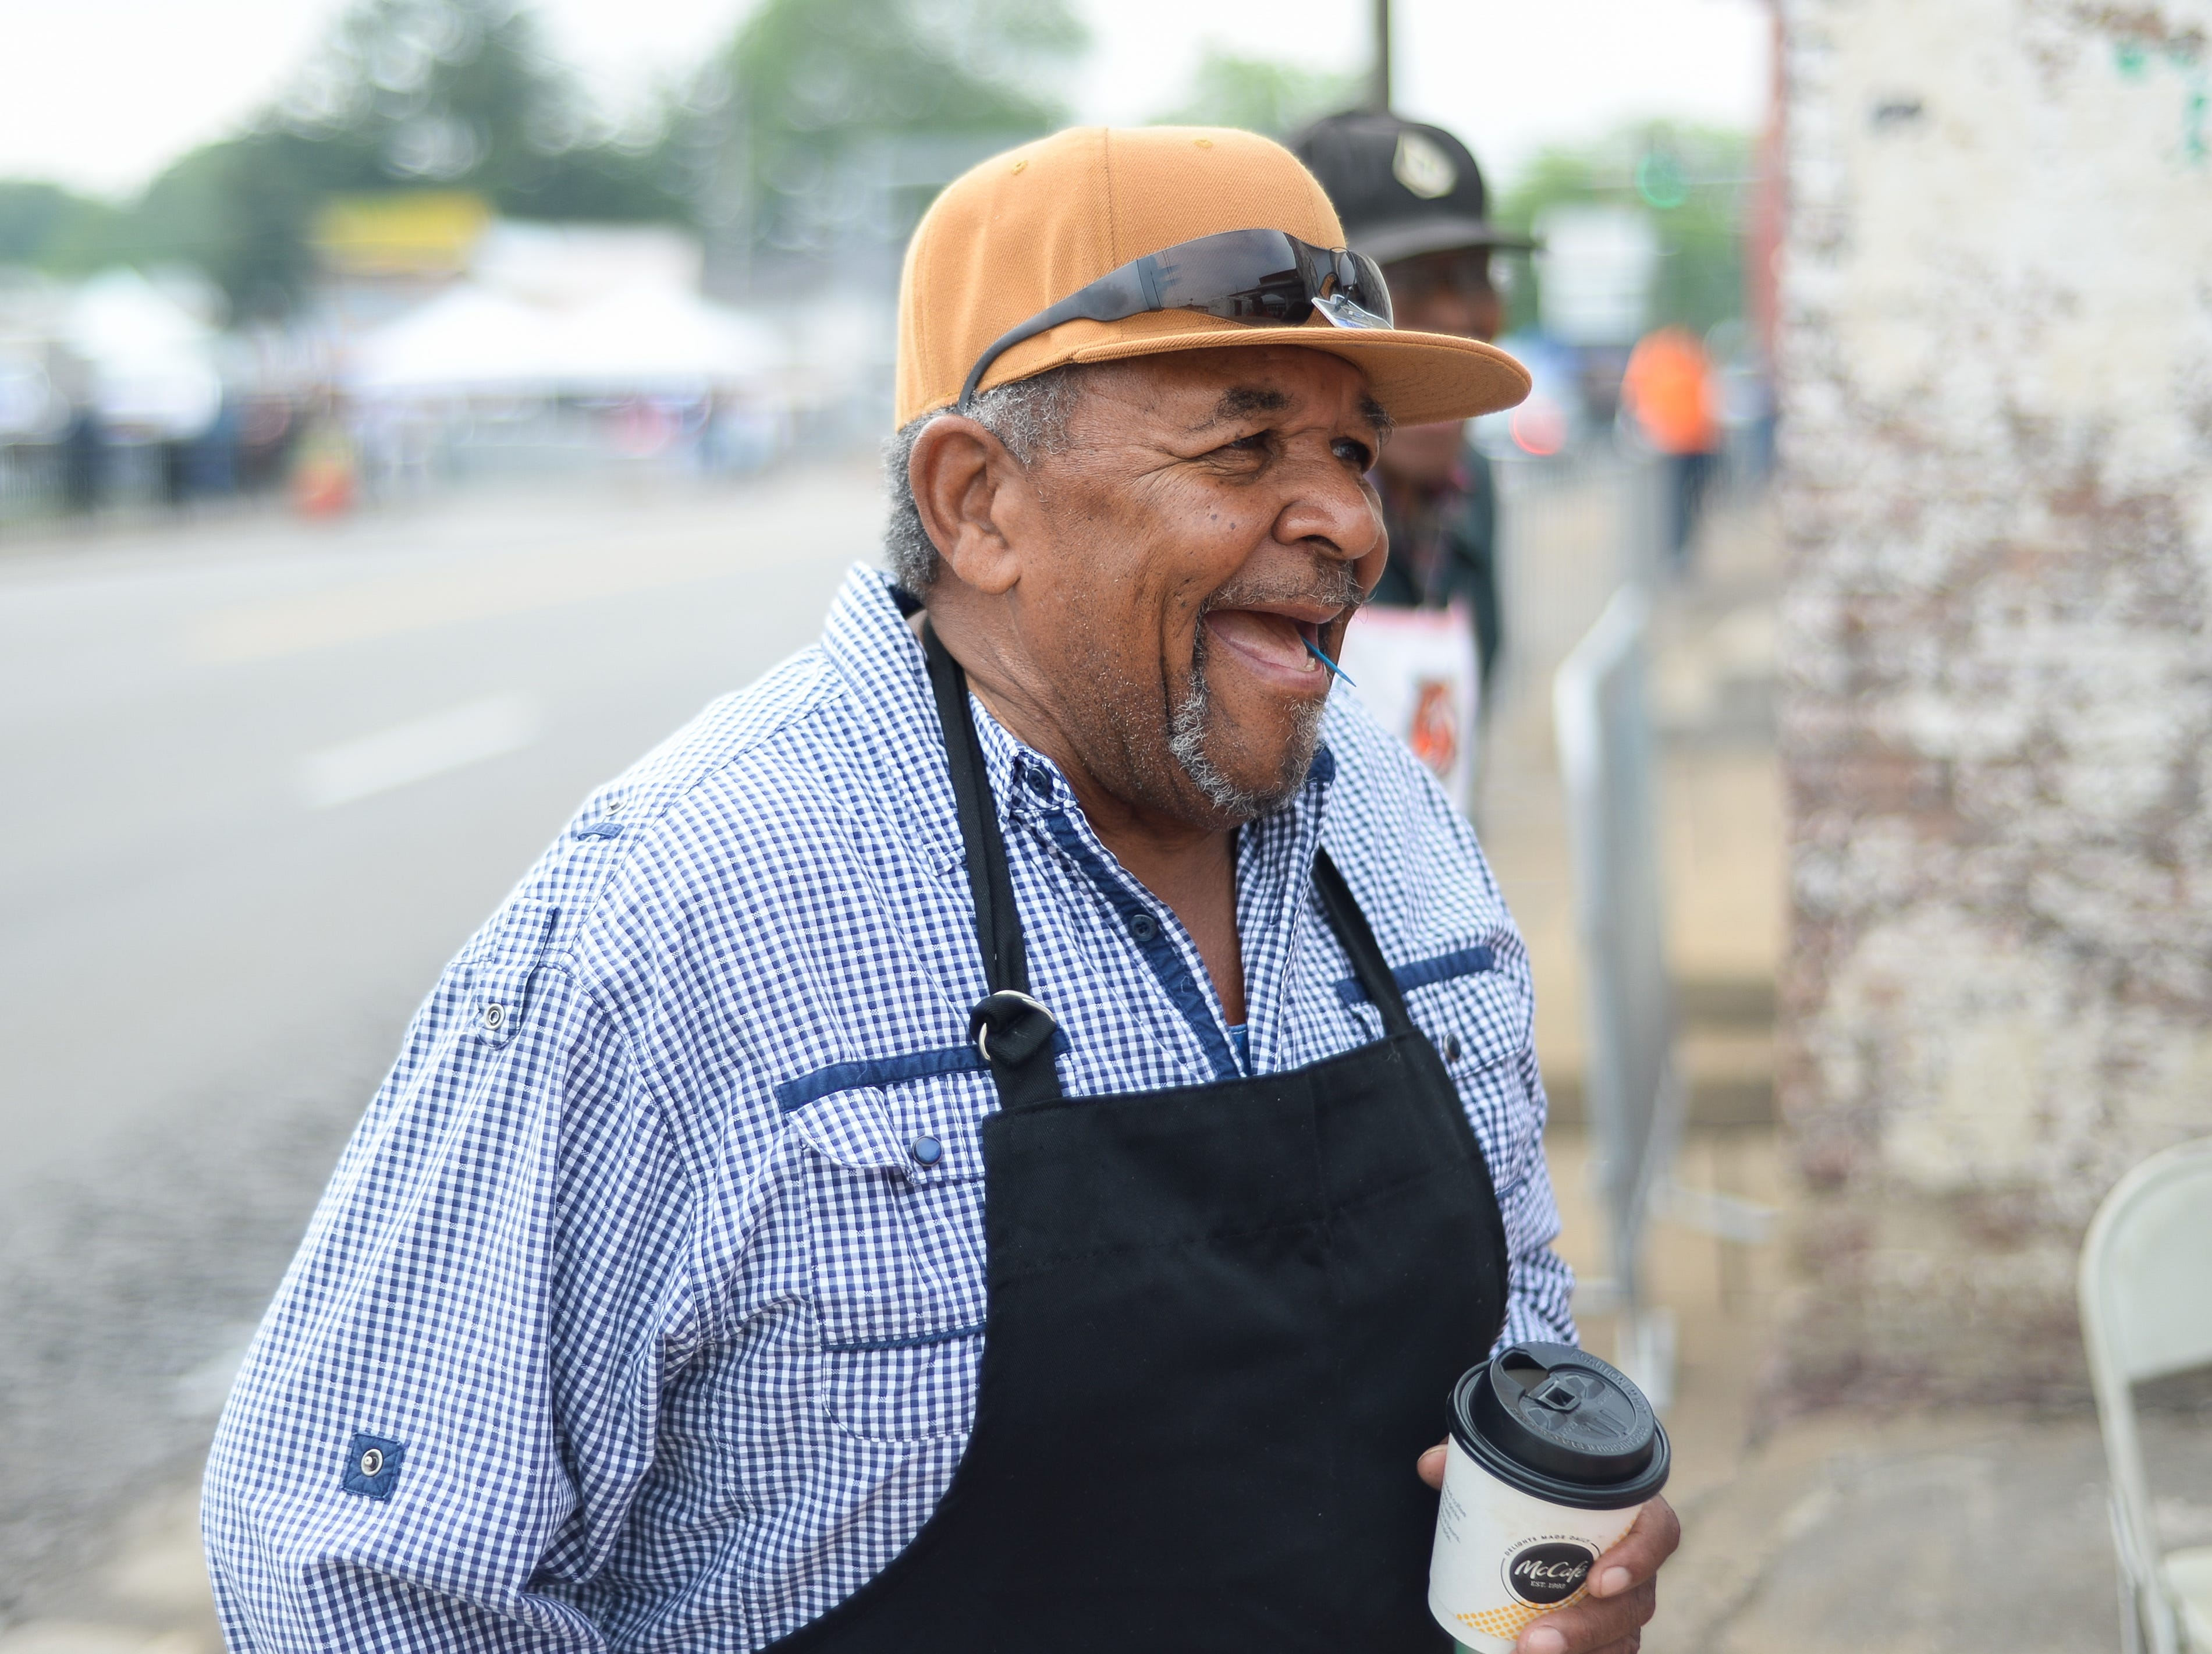 New Hope Baptist Church offered delicious food during the 78th Annual Middle Tennessee Strawberry Festival presented by the Portland Chamber of Commerce in Portland on Saturday, May 11.